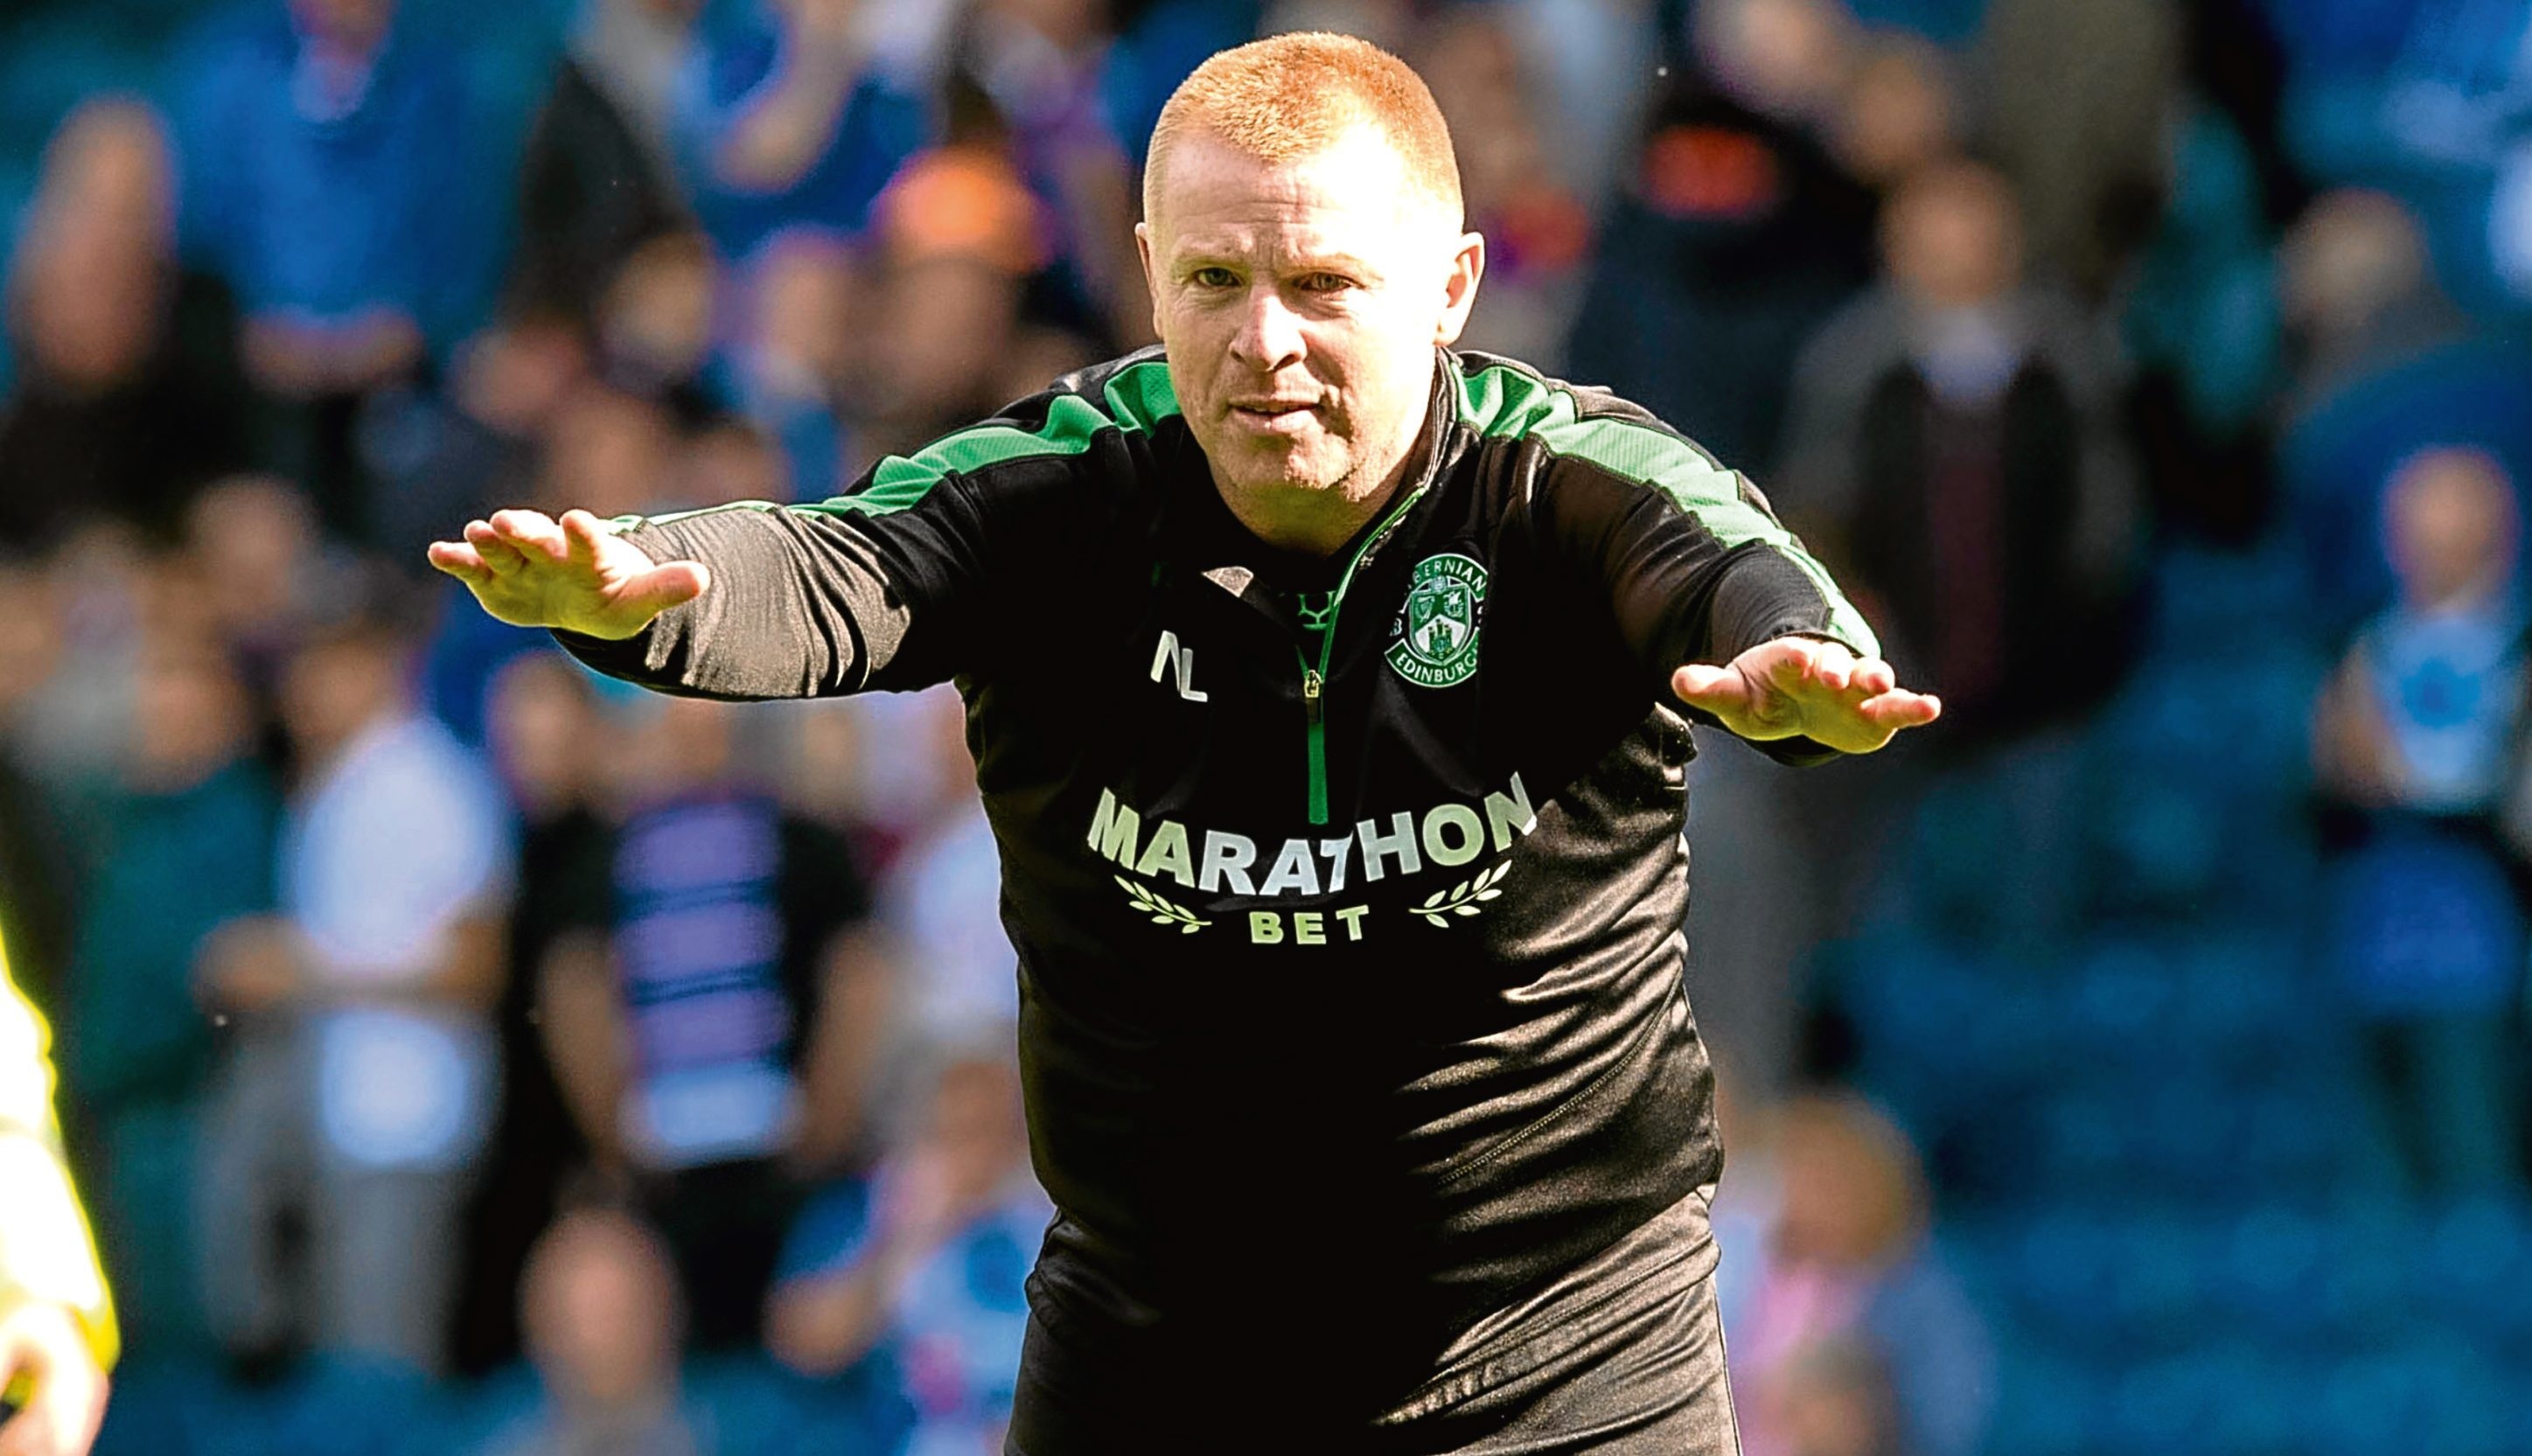 Hibernian head coach Neil Lennon celebrates at full time after the win over Rangers (SNS Group)